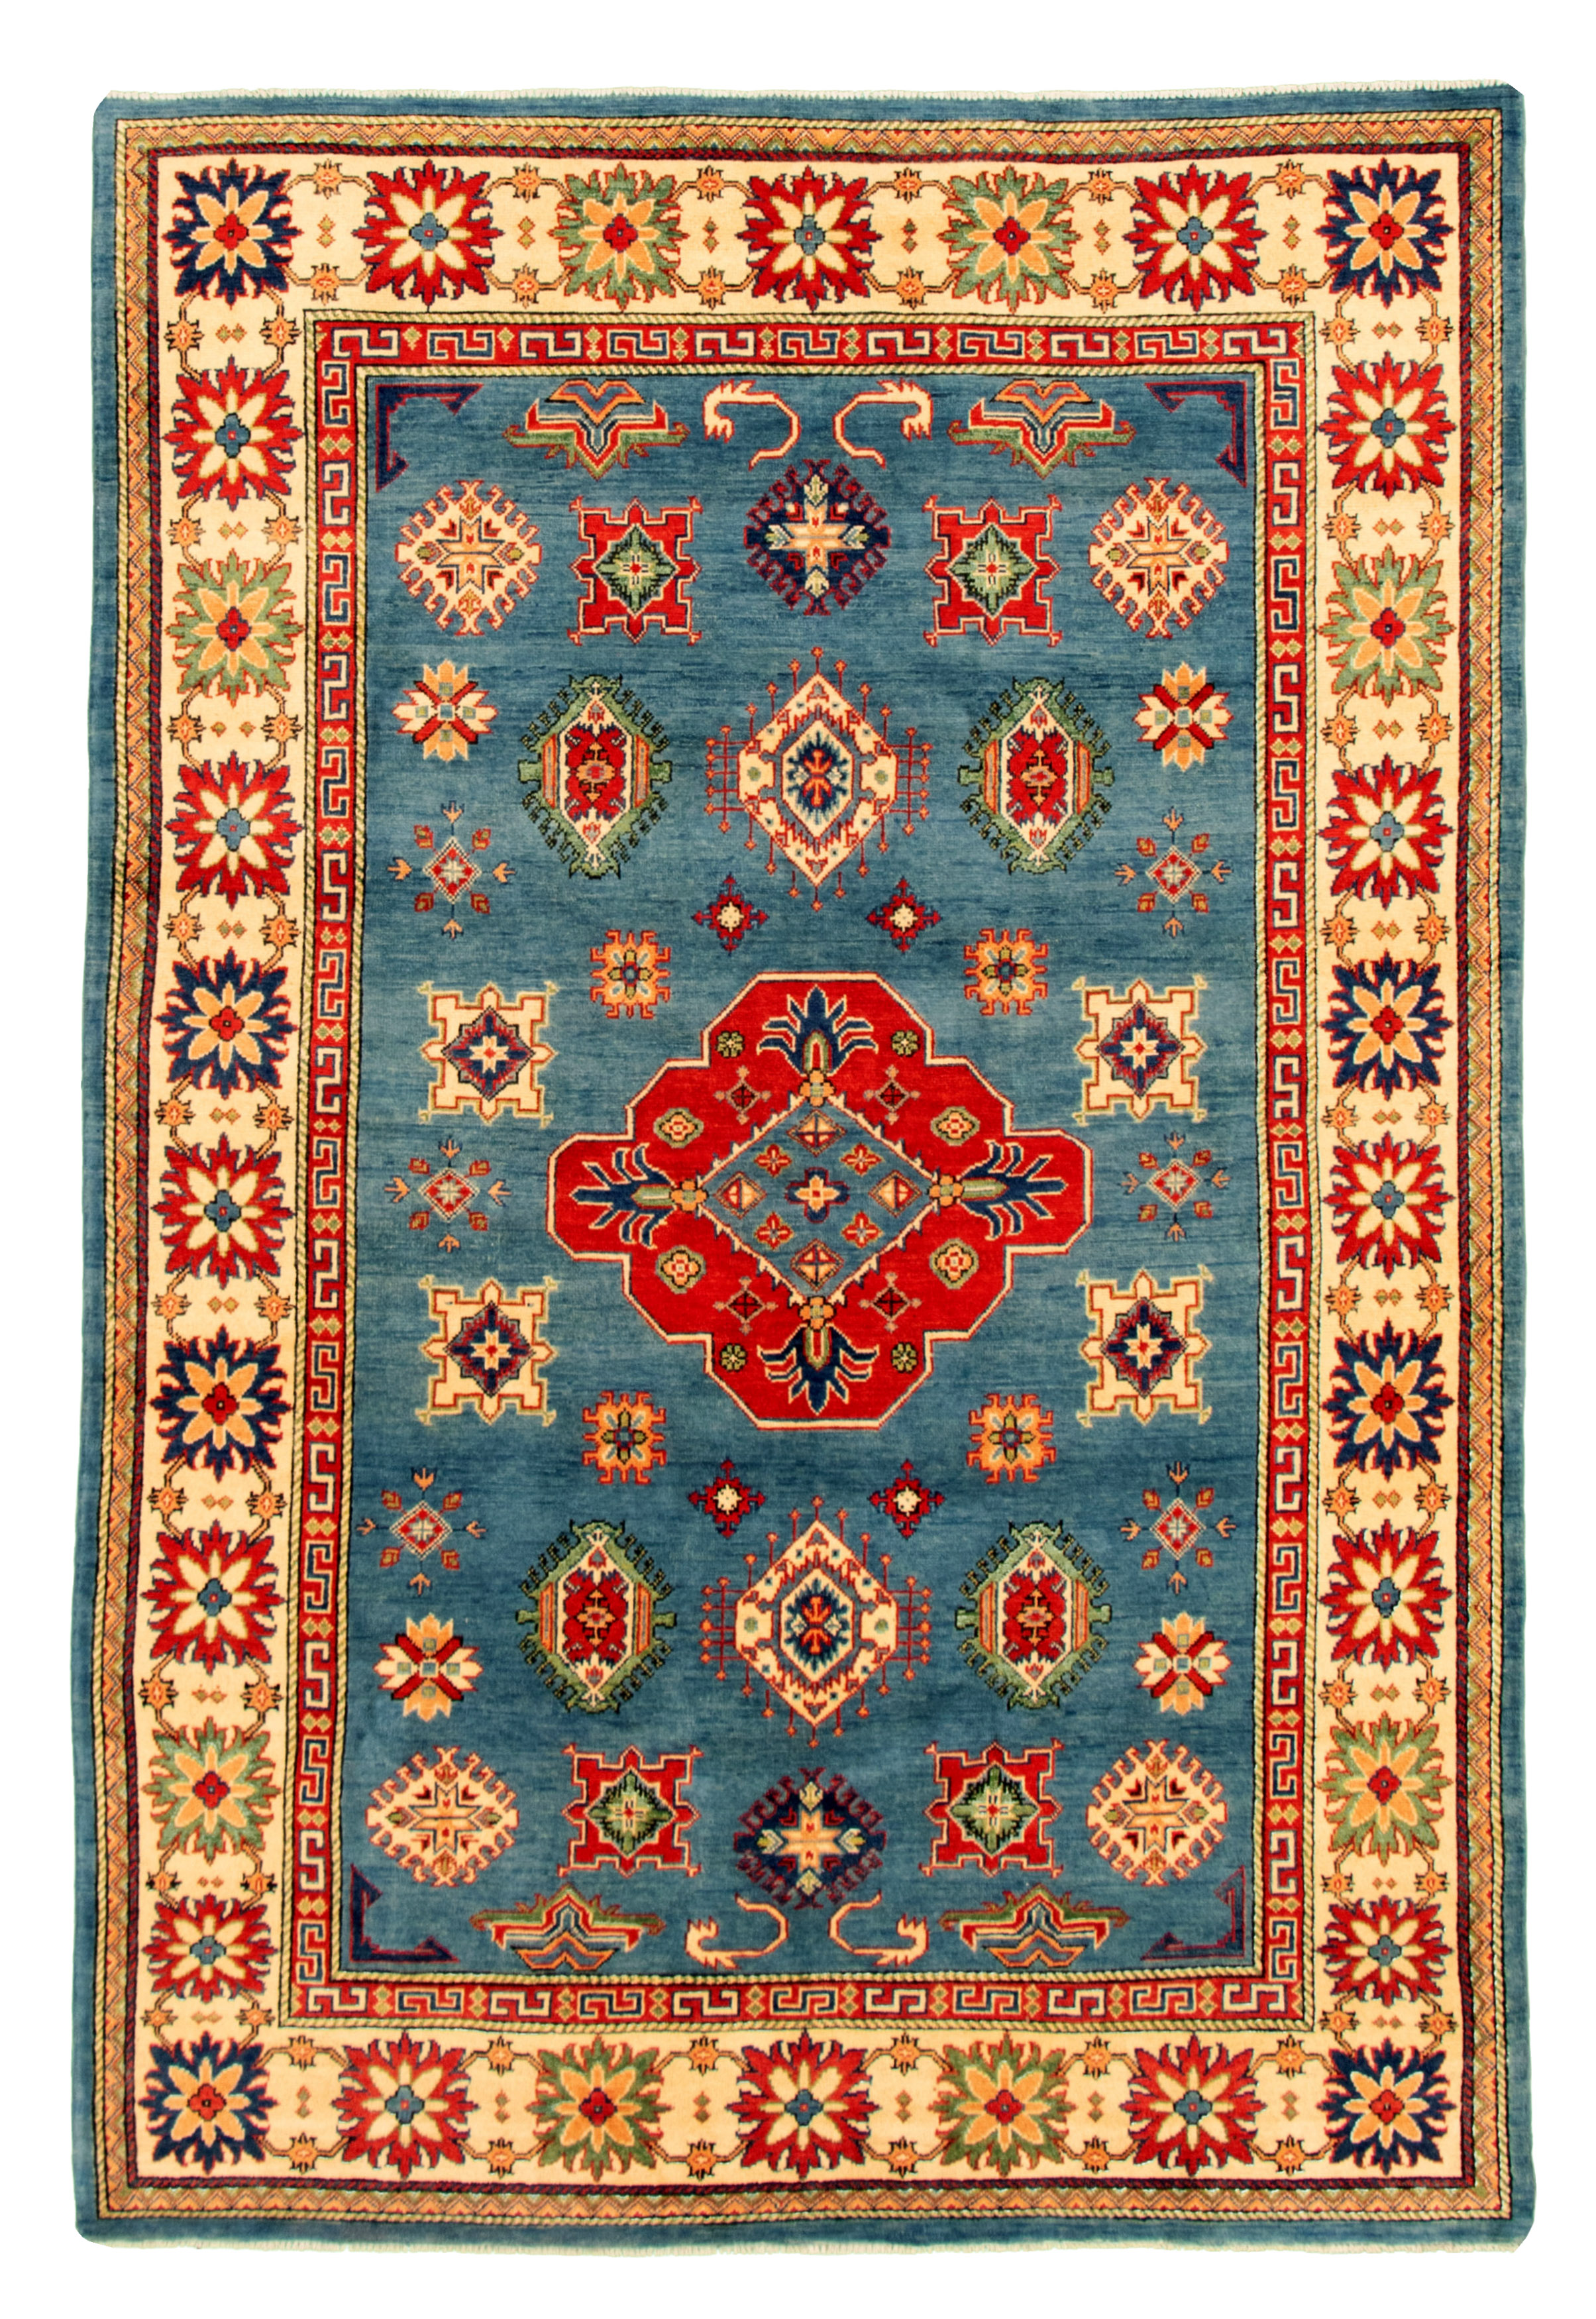 """Hand-knotted Finest Gazni Blue Wool Rug 6'6"""" x 9'7""""  Size: 6'6"""" x 9'7"""""""